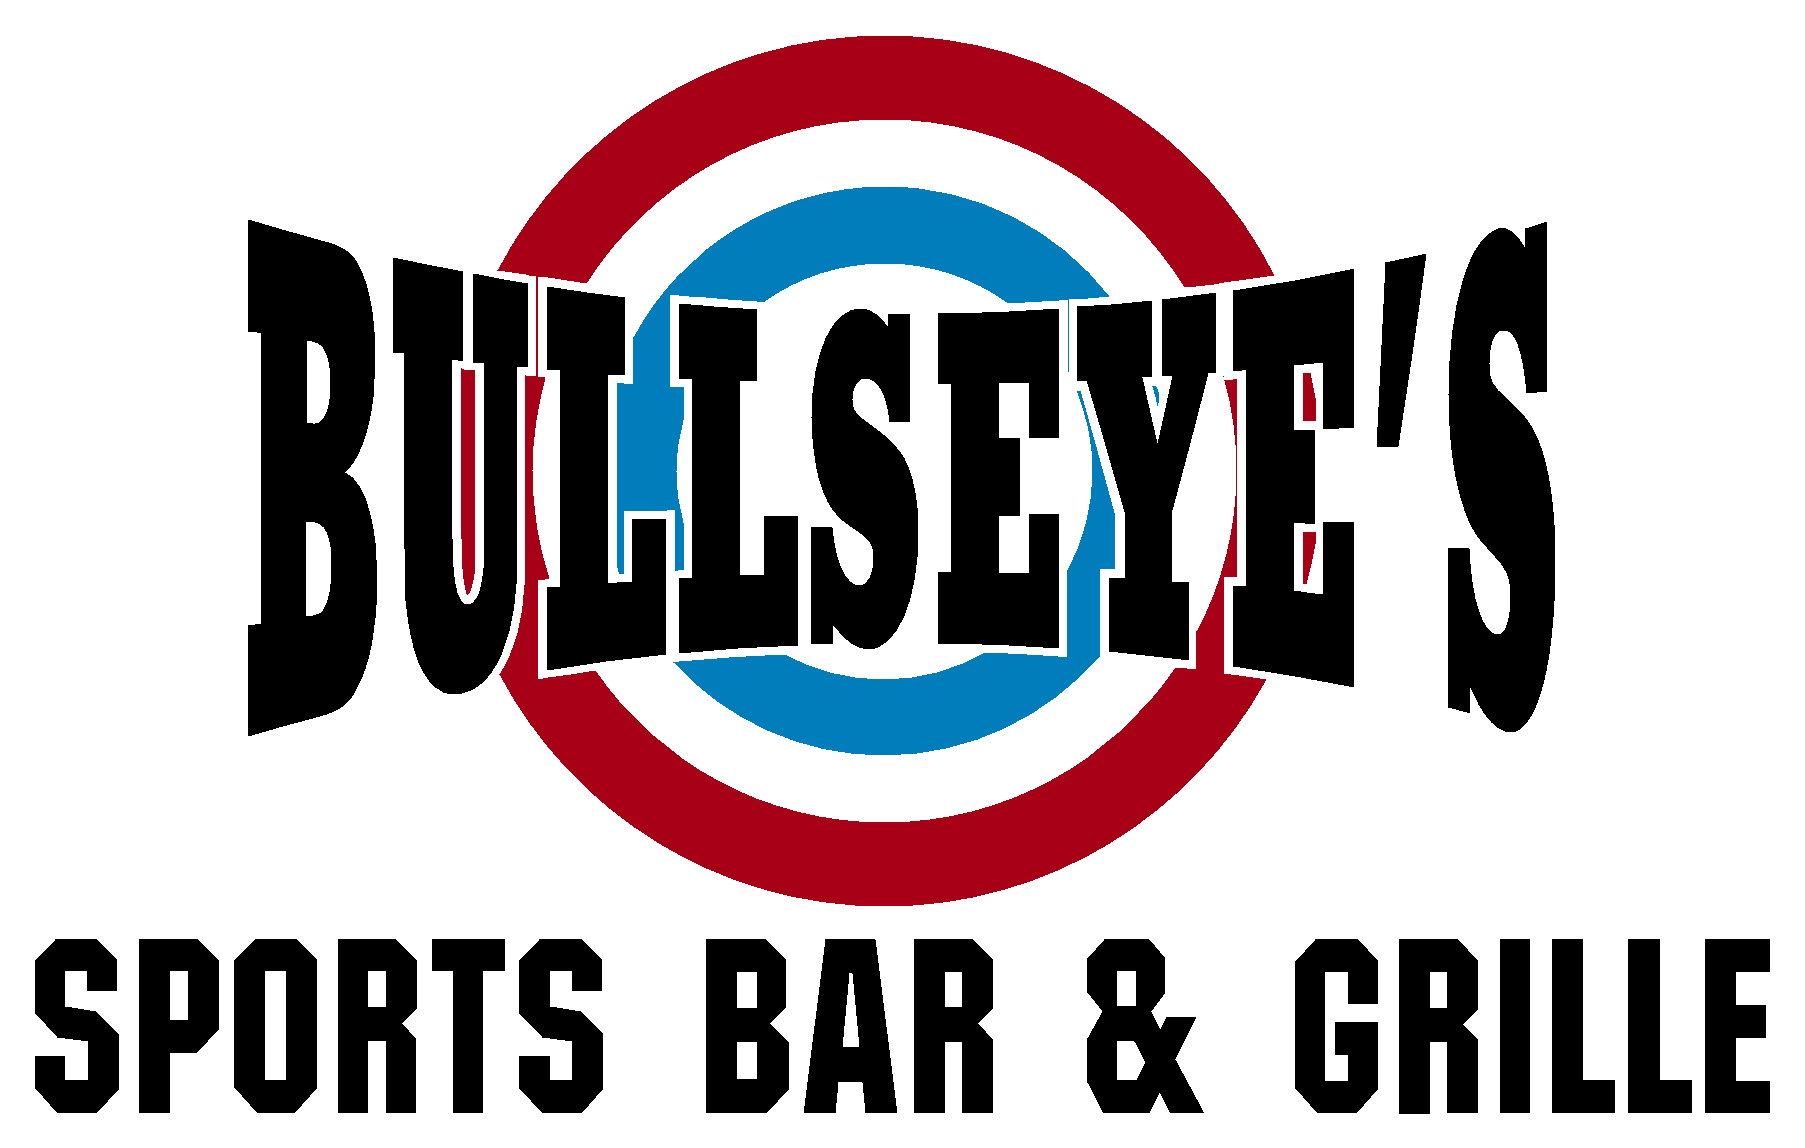 Bullseye's Sports Bar and Grille